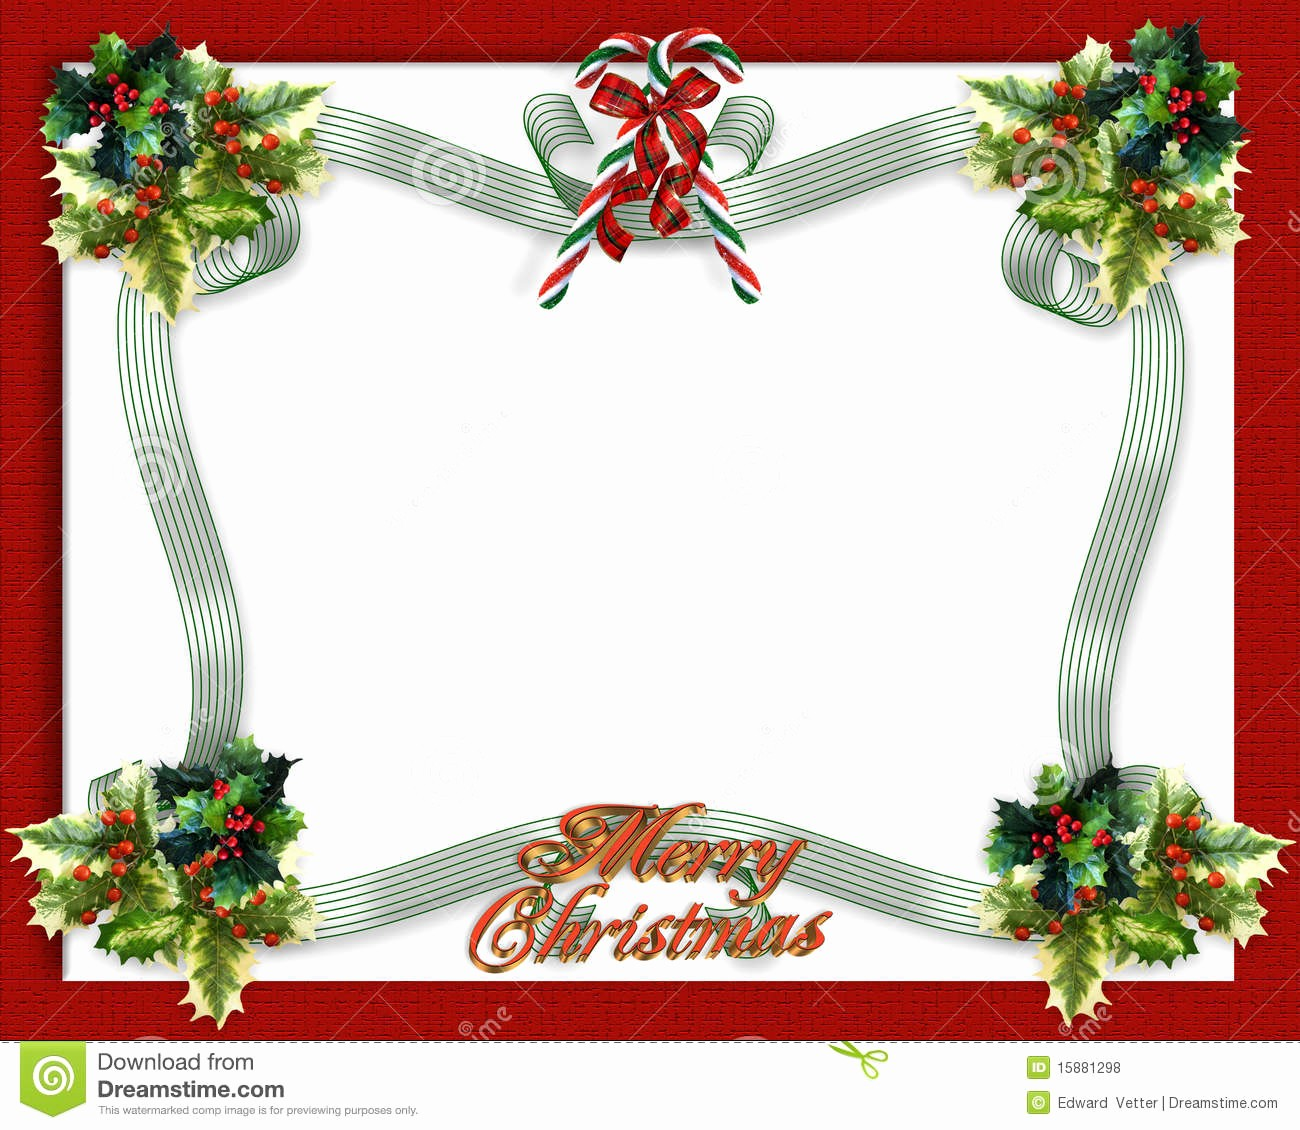 Christmas Party Invitation Free Template Best Of Christmas Party Poster Template Free Download B Christmas